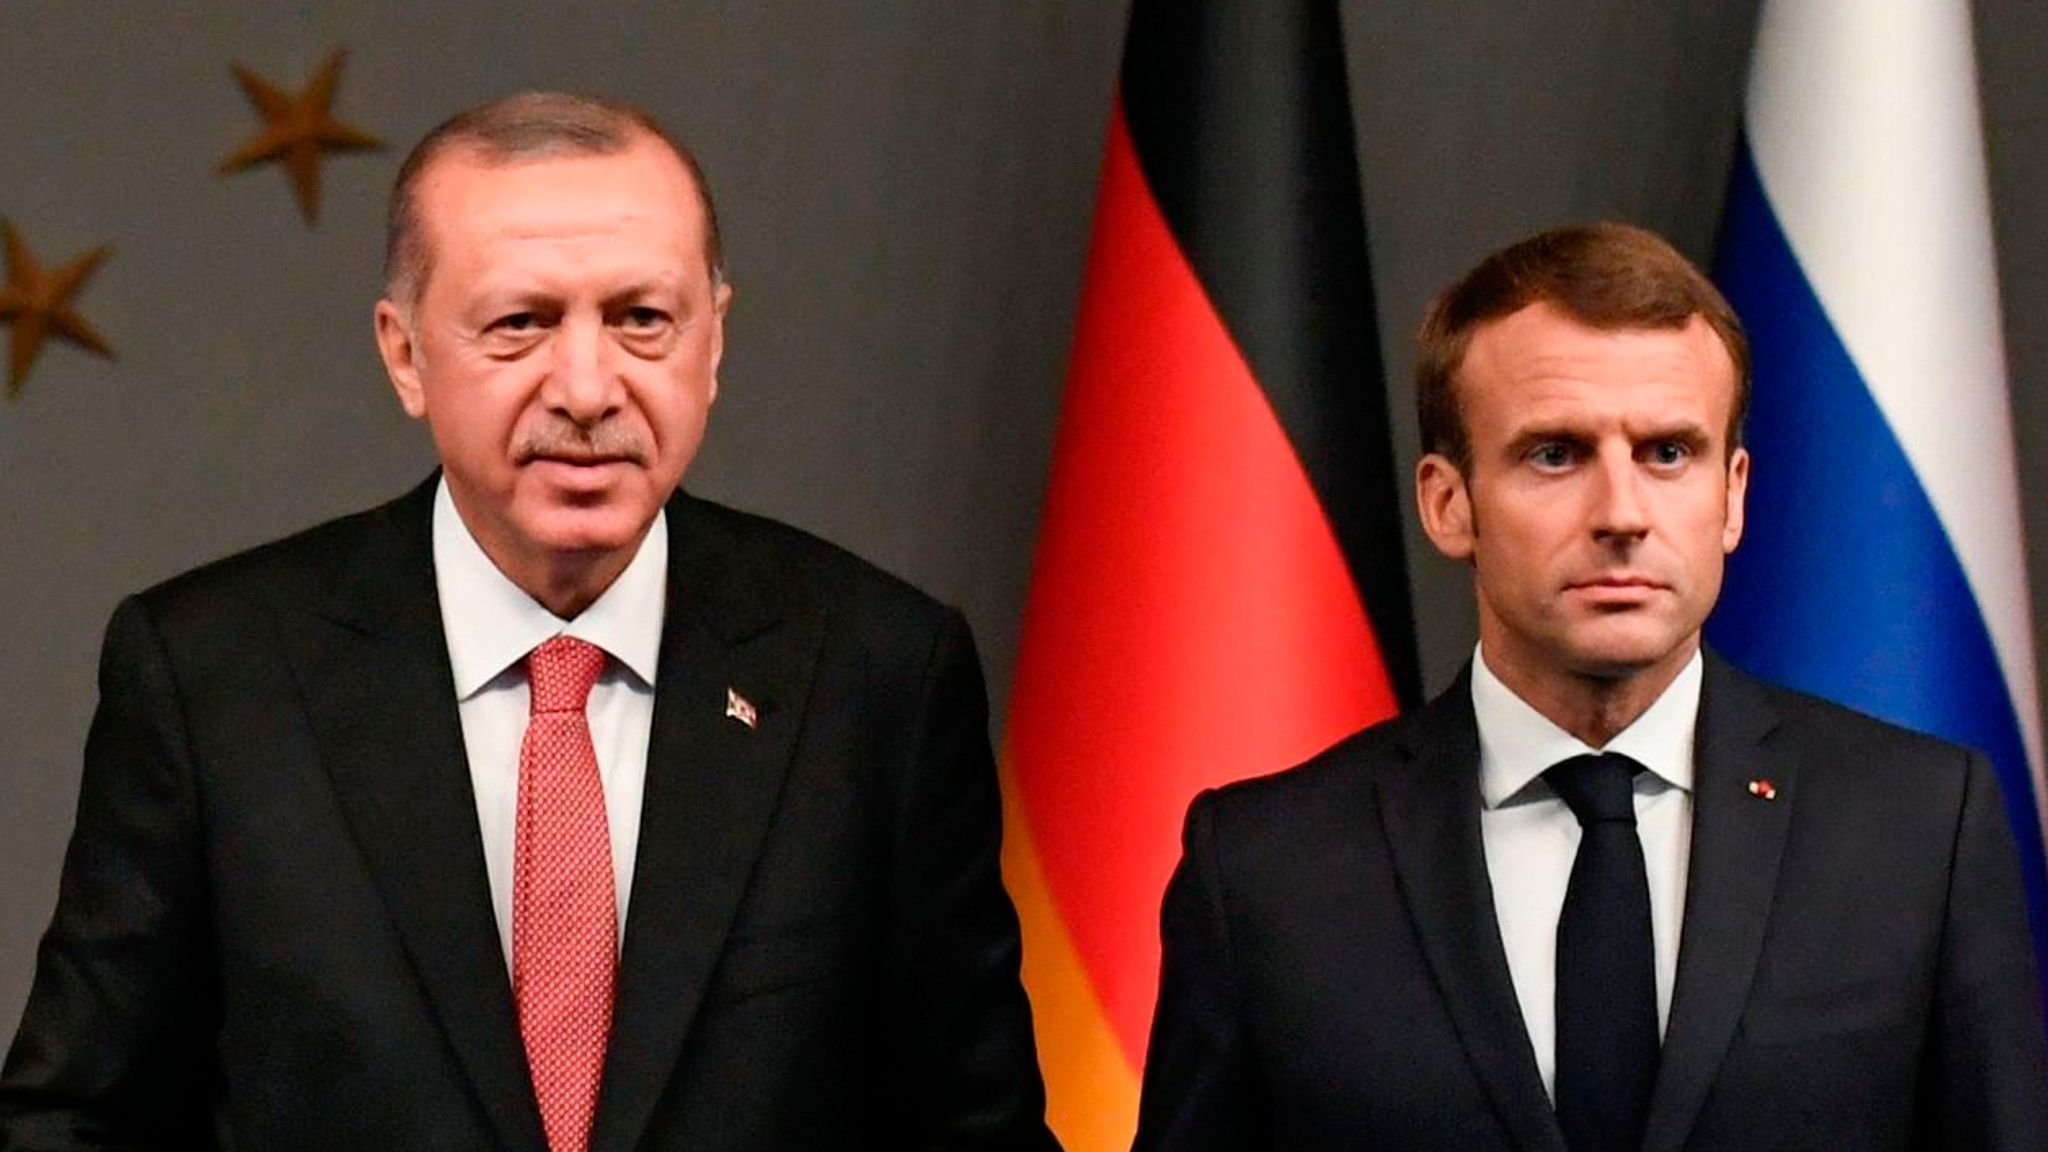 Turkish President Claims Emmanuel Macron Needs Mental Health Treatment Over His Attitude To Islam World News Sky News